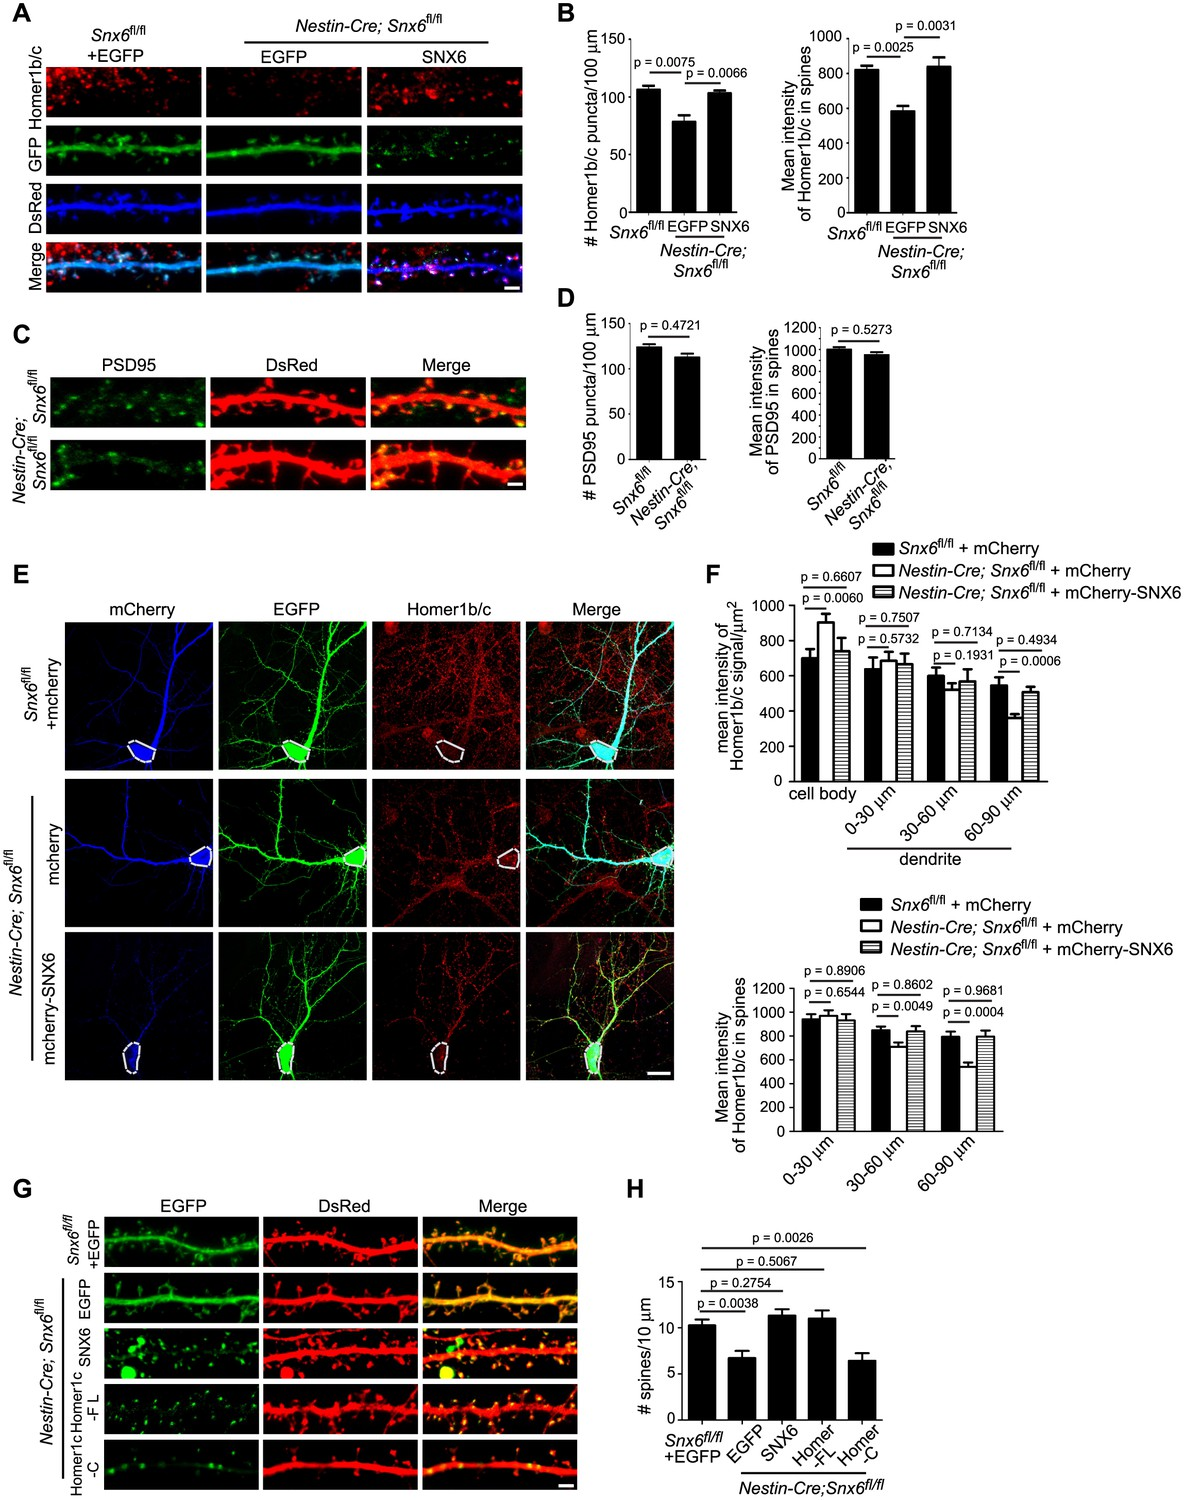 Ablation Of Snx6 Leads To Defects In Synaptic Function Ca1 Panel Lint Filter 04controls Top 05motor 06wiring Diagram Partial Loss Homer1b C From Distal Dendrites Neurons